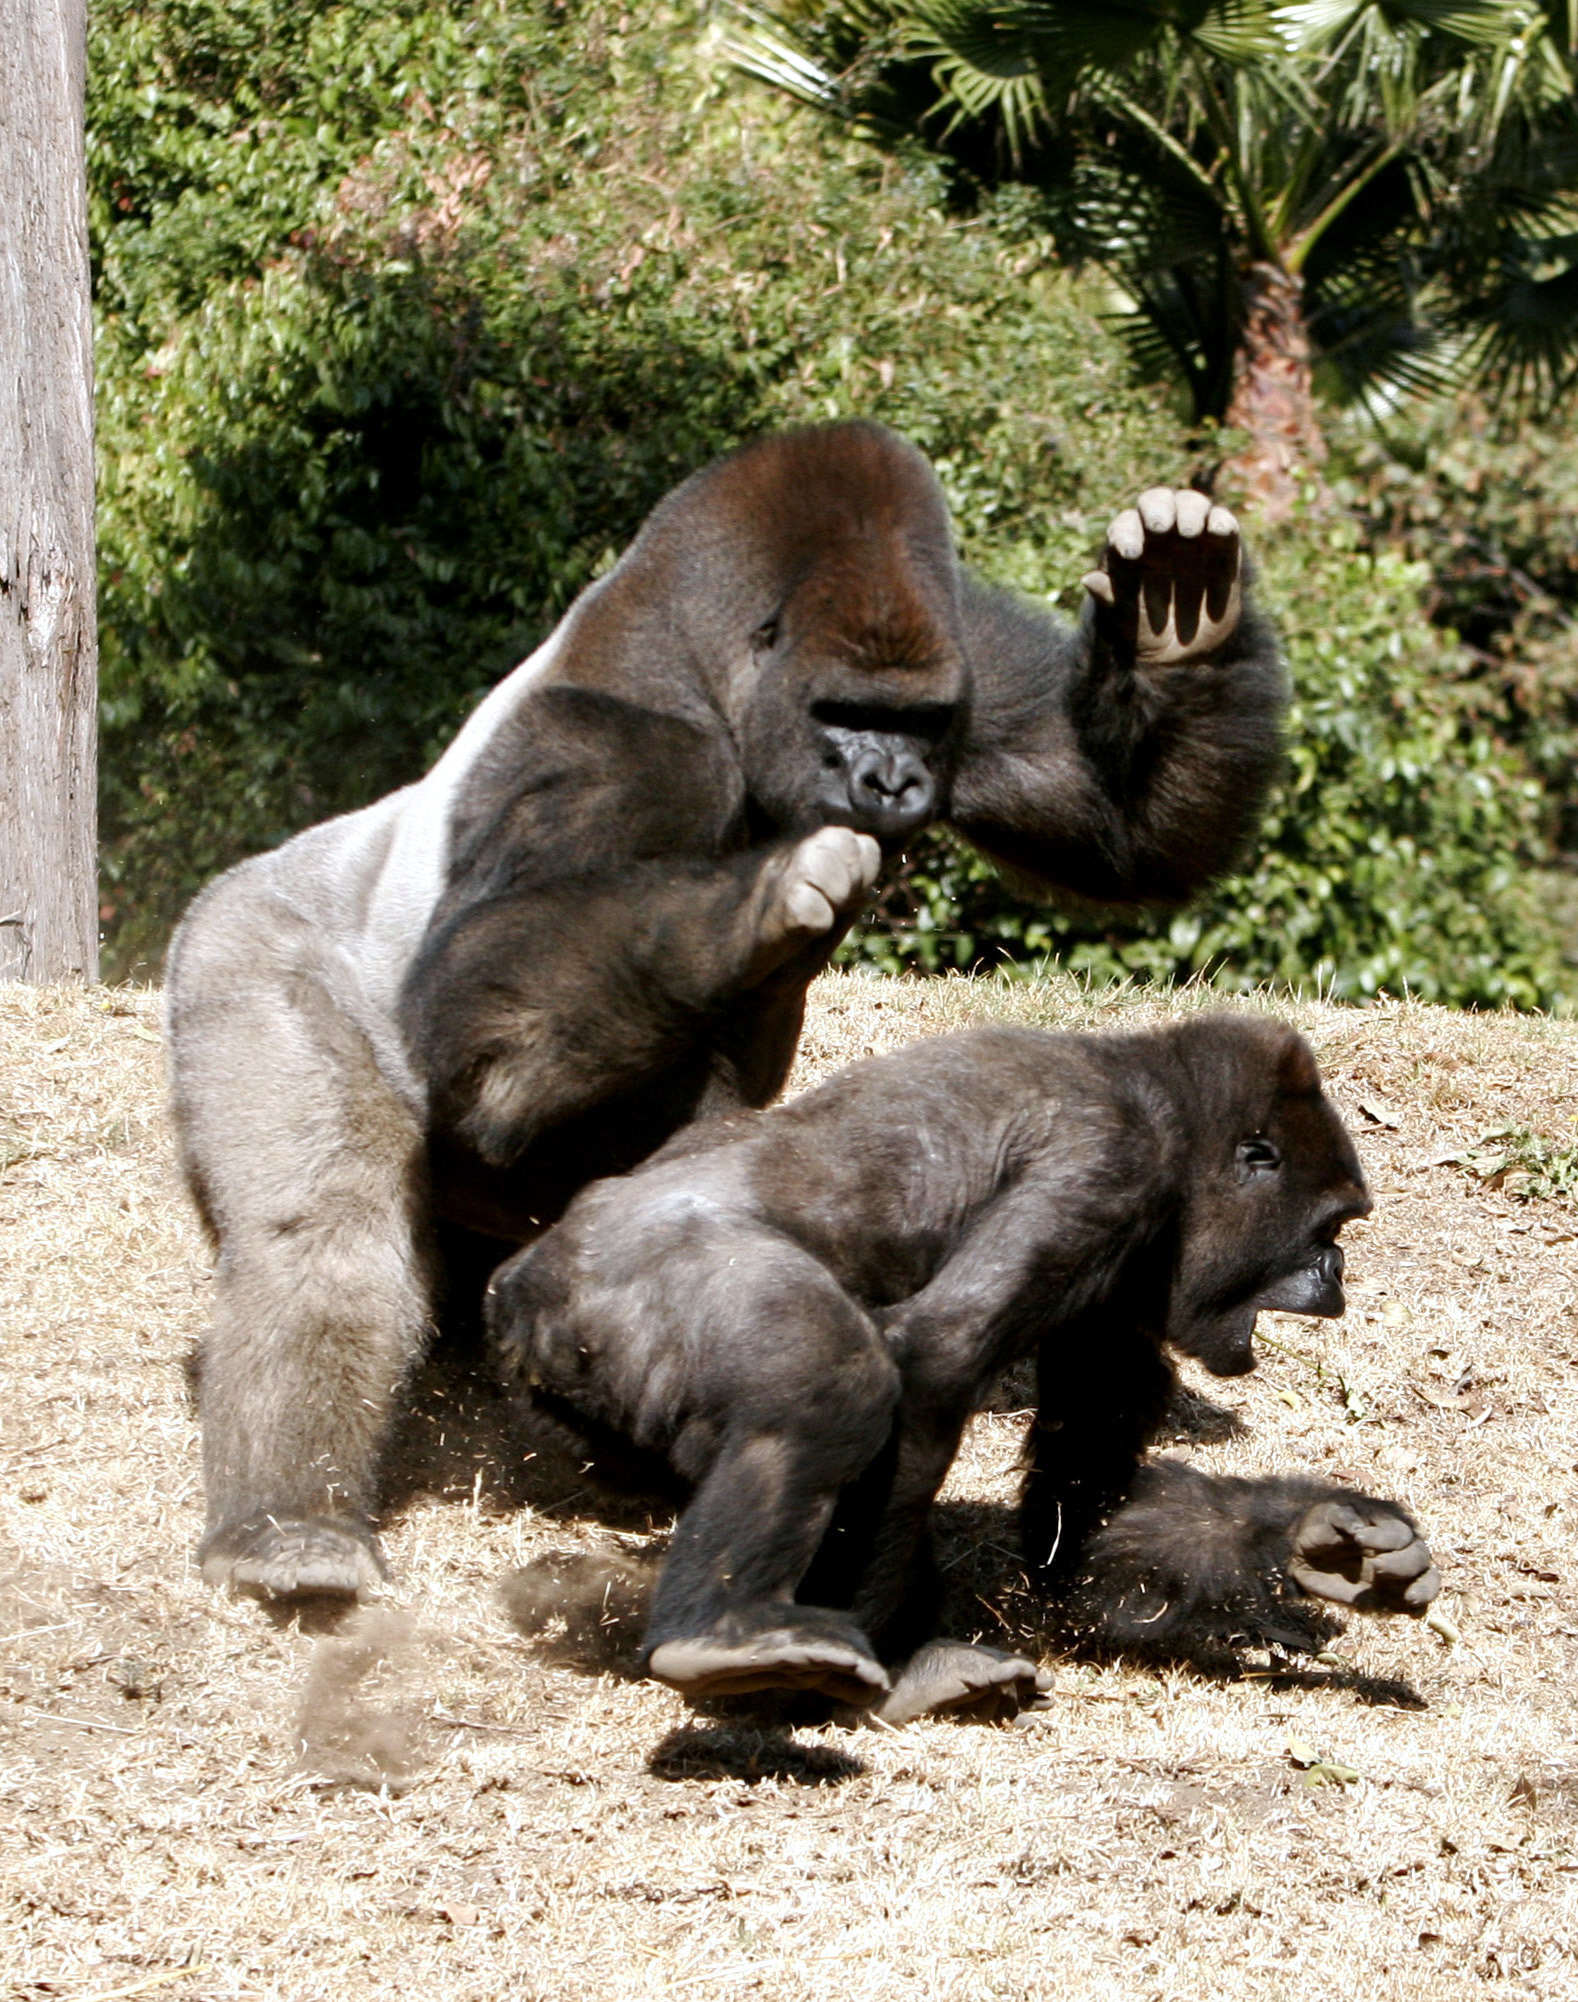 Another Gorilla Has Been Killed In Captivity bantu1